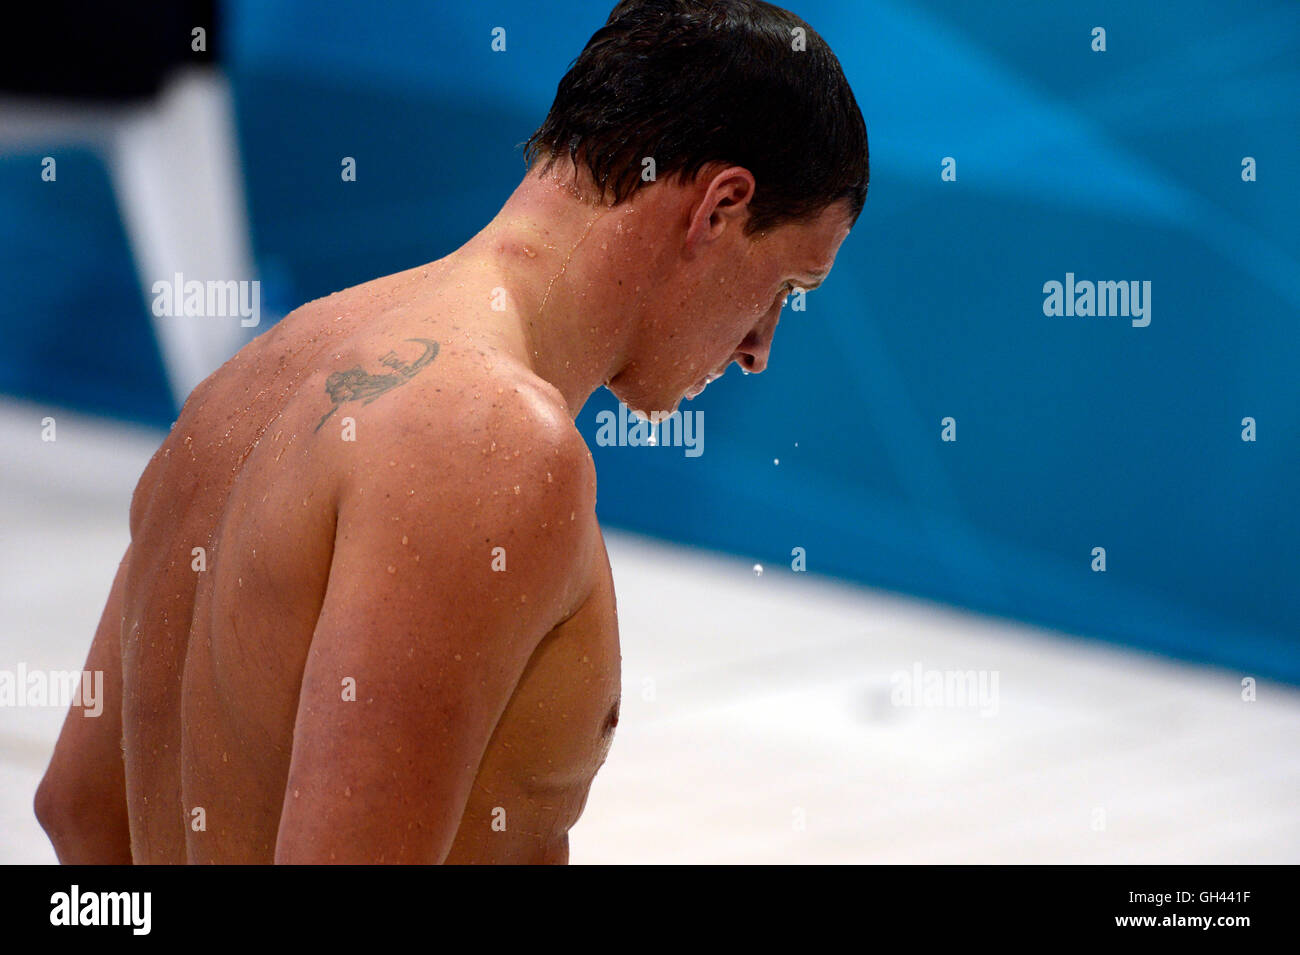 London 2012  - Olympics:   Swimming.  Men's 200 Meter Freestyle - Final.     Ryan Lochte of the USA after finishing - Stock Image